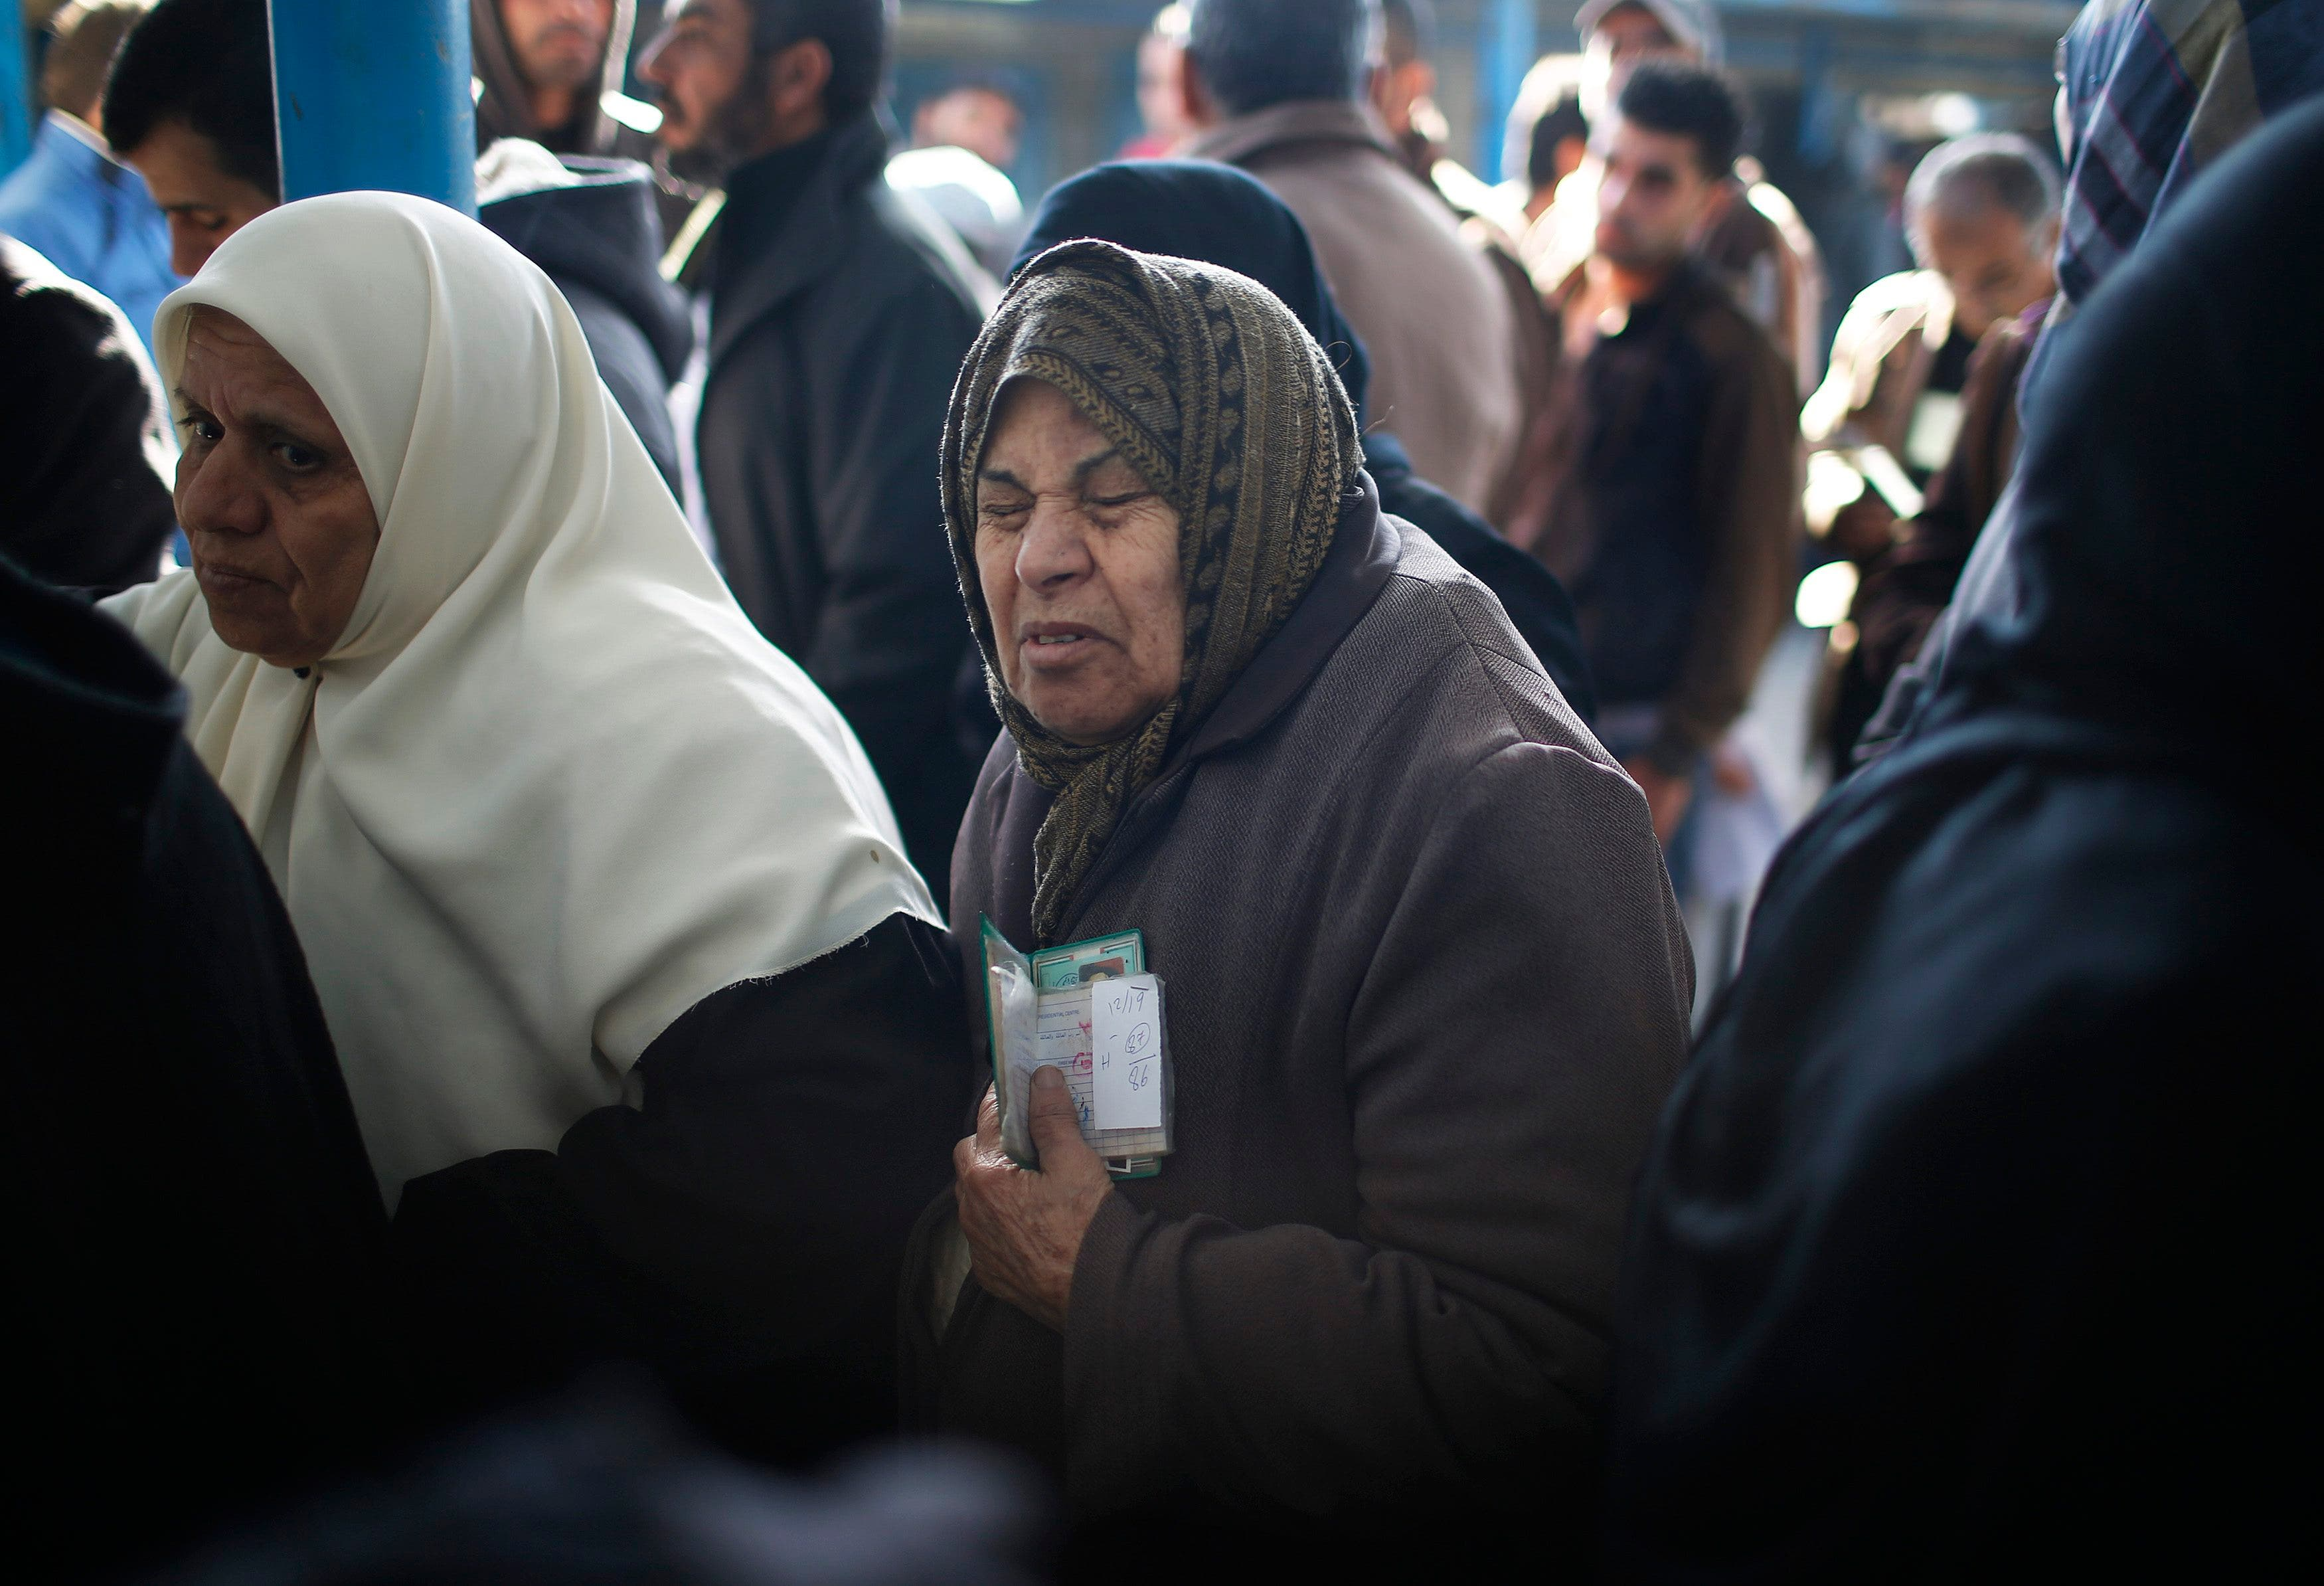 Palestinians receive food aid from U.N. distribution center